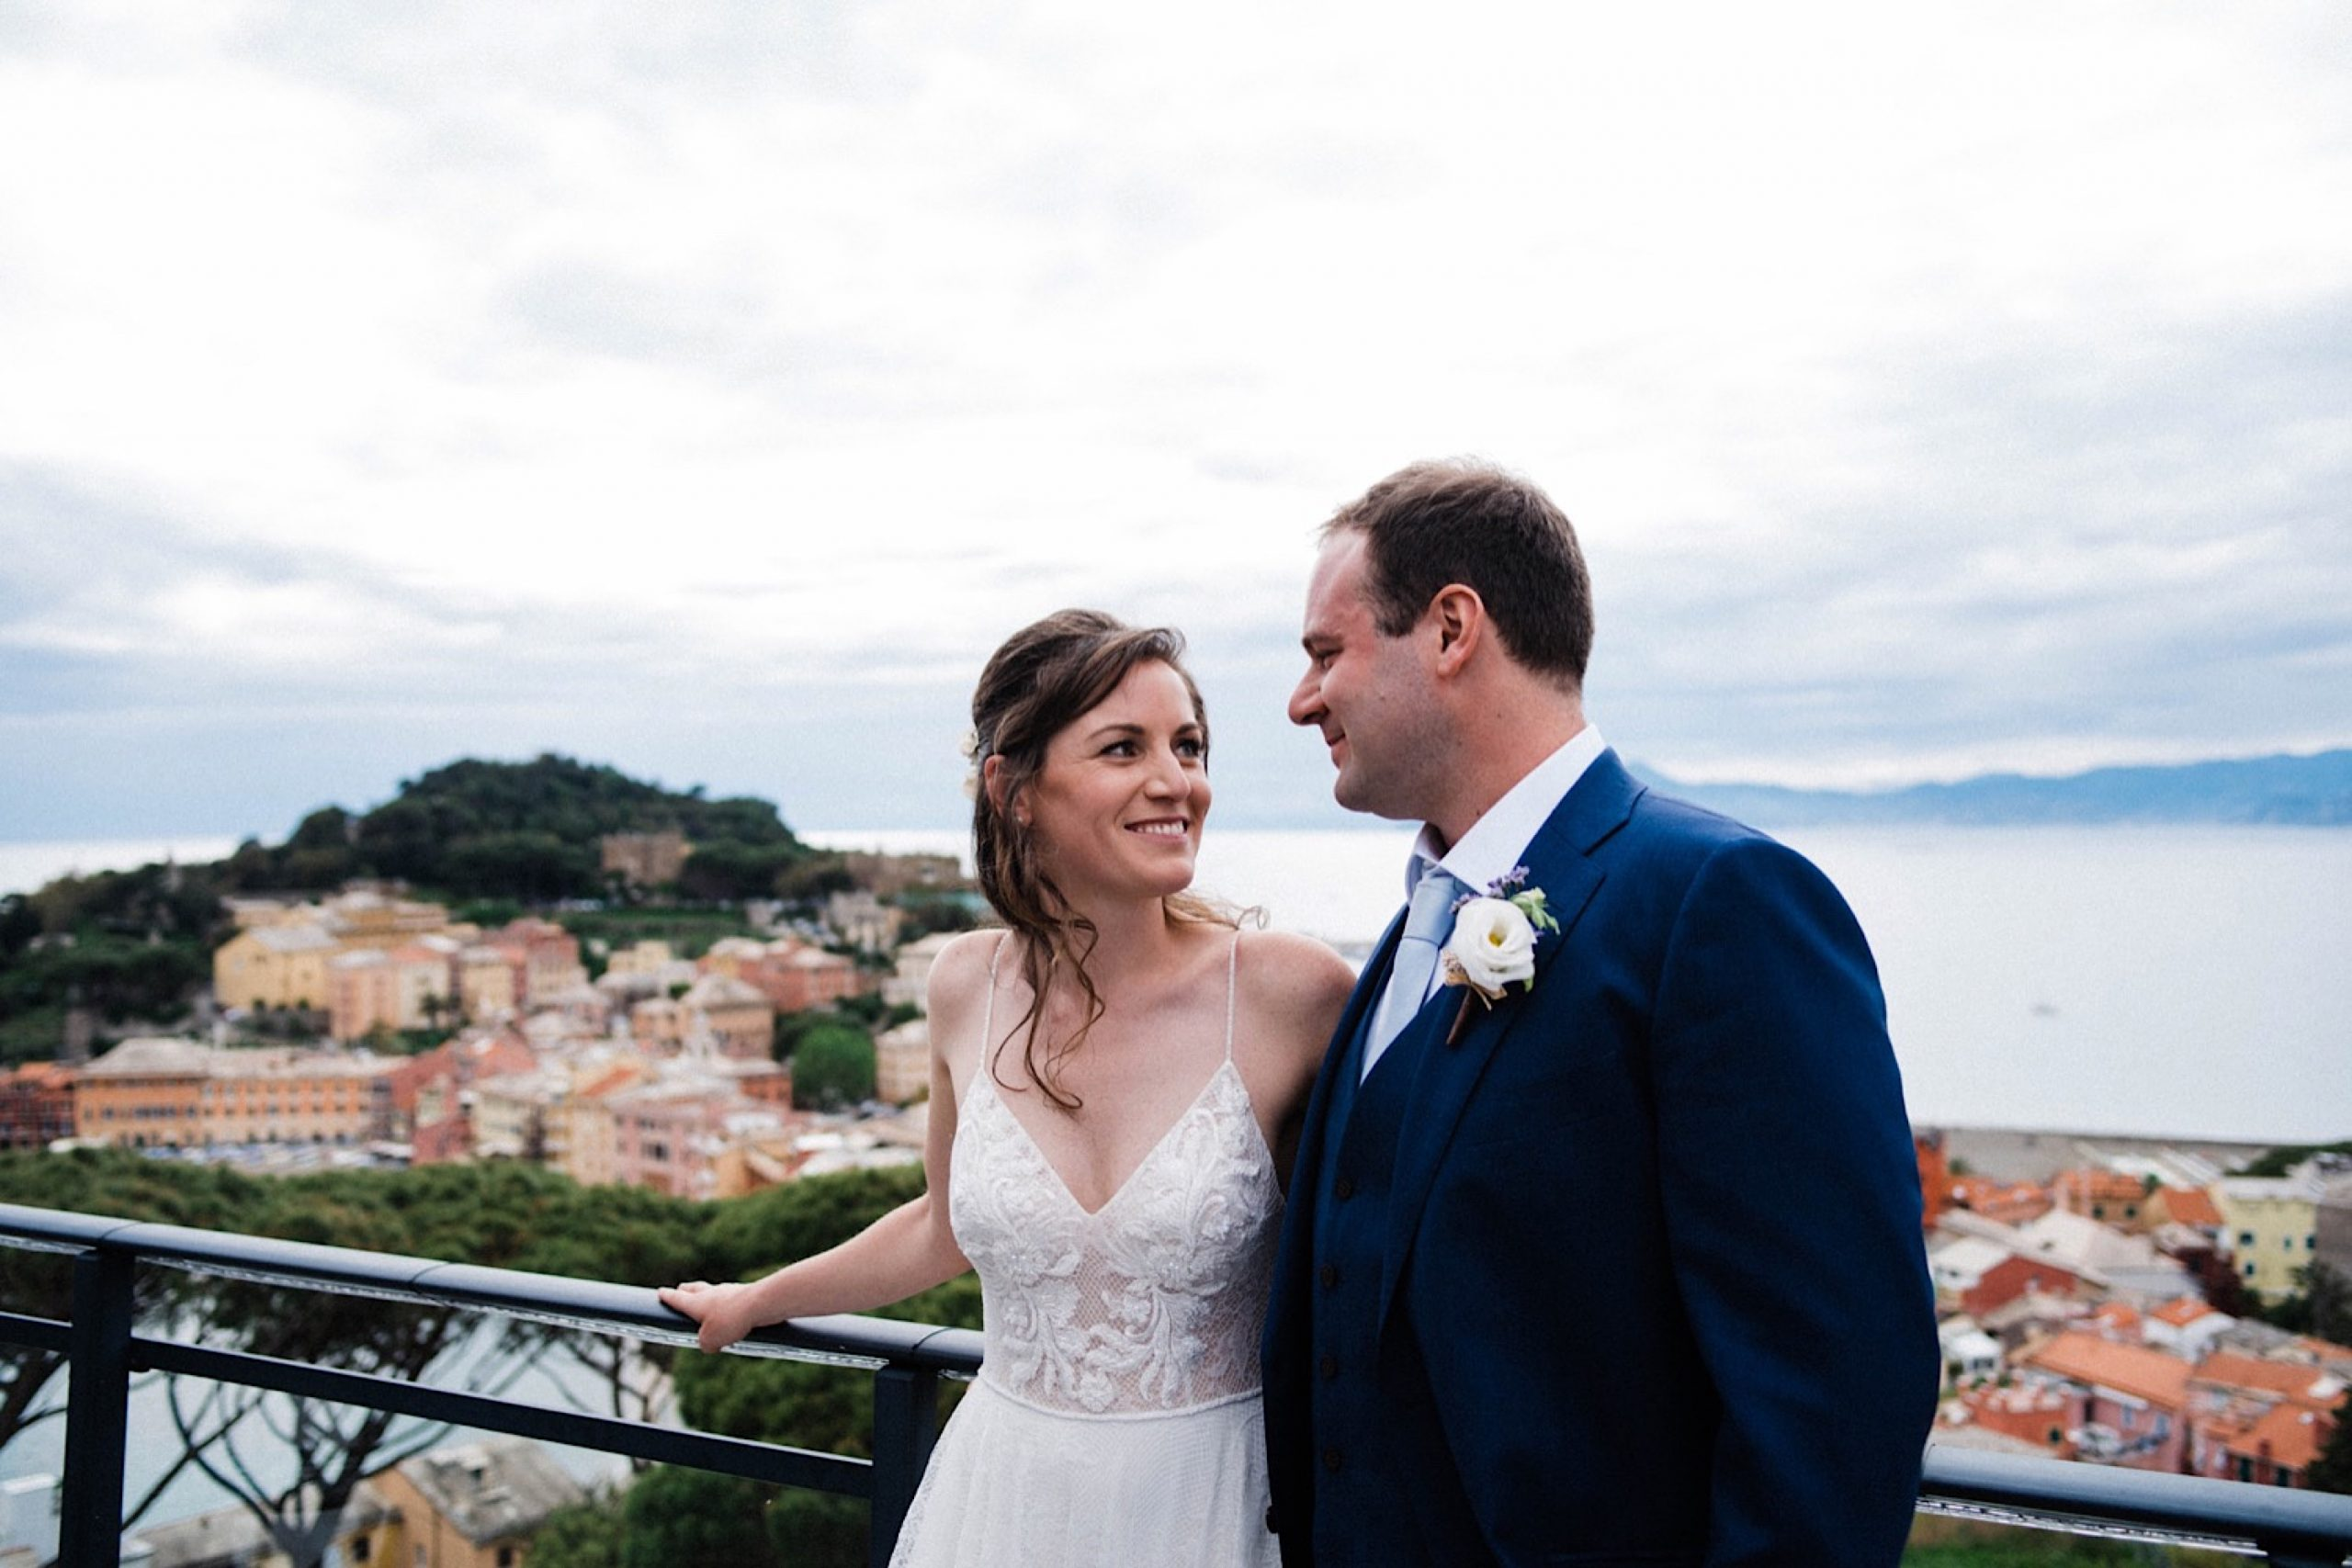 A Destination Wedding Portrait taken from the rooftop at the Hotel Vis À Vis in Sestri Levante, Italy.